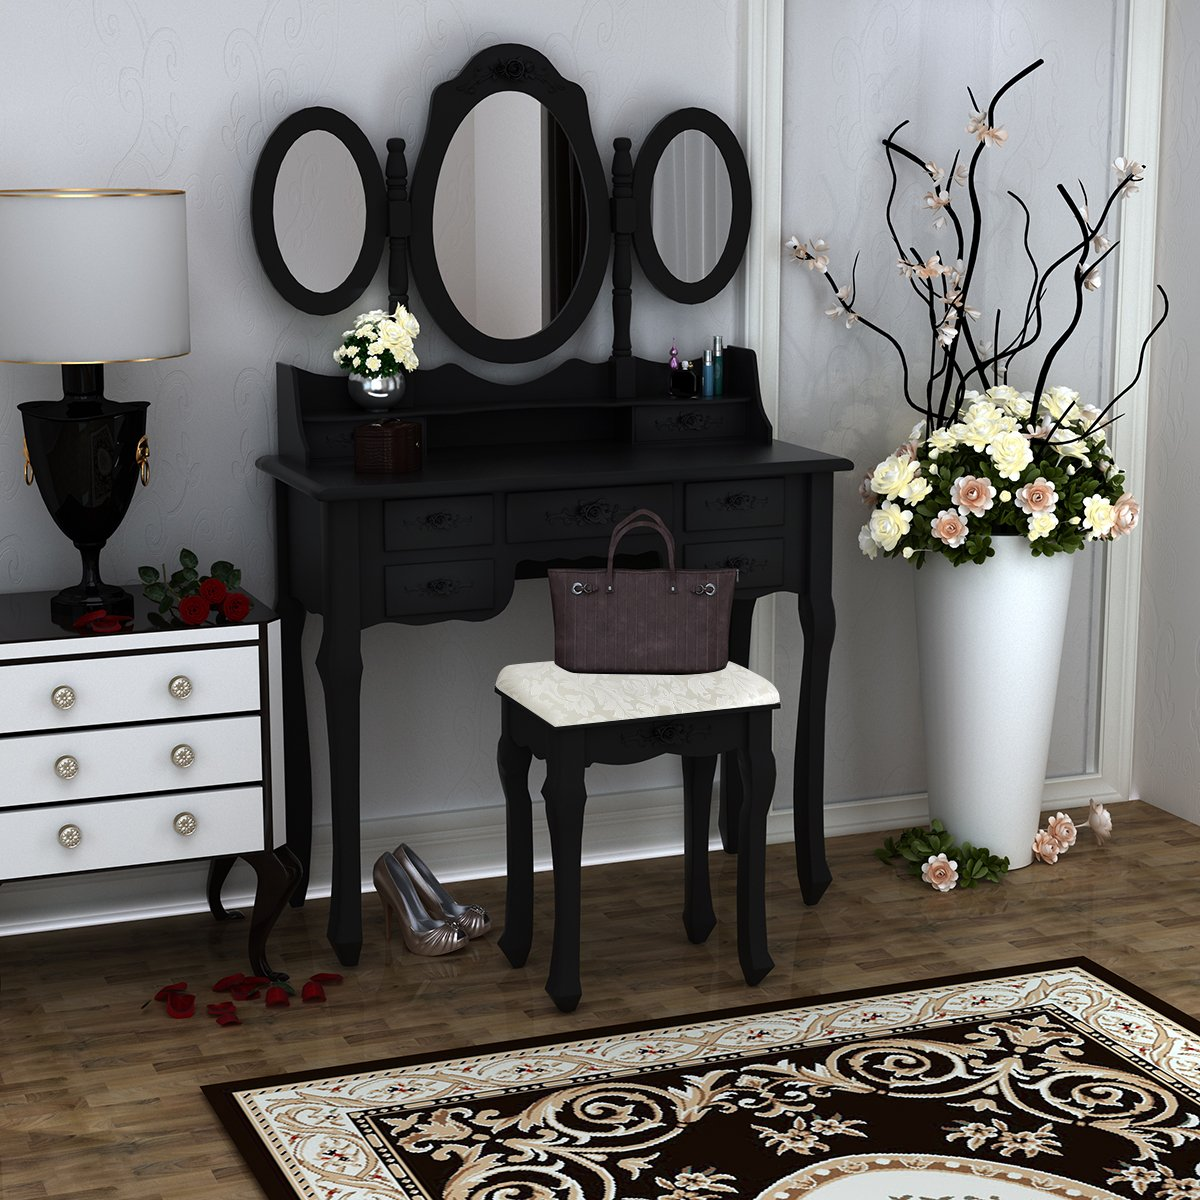 PananaHome Modern Dressing Table with Stool 7 Drawers and Oval Mirror Wood Makeup Vanity Dresser Set Girls Bedroom White